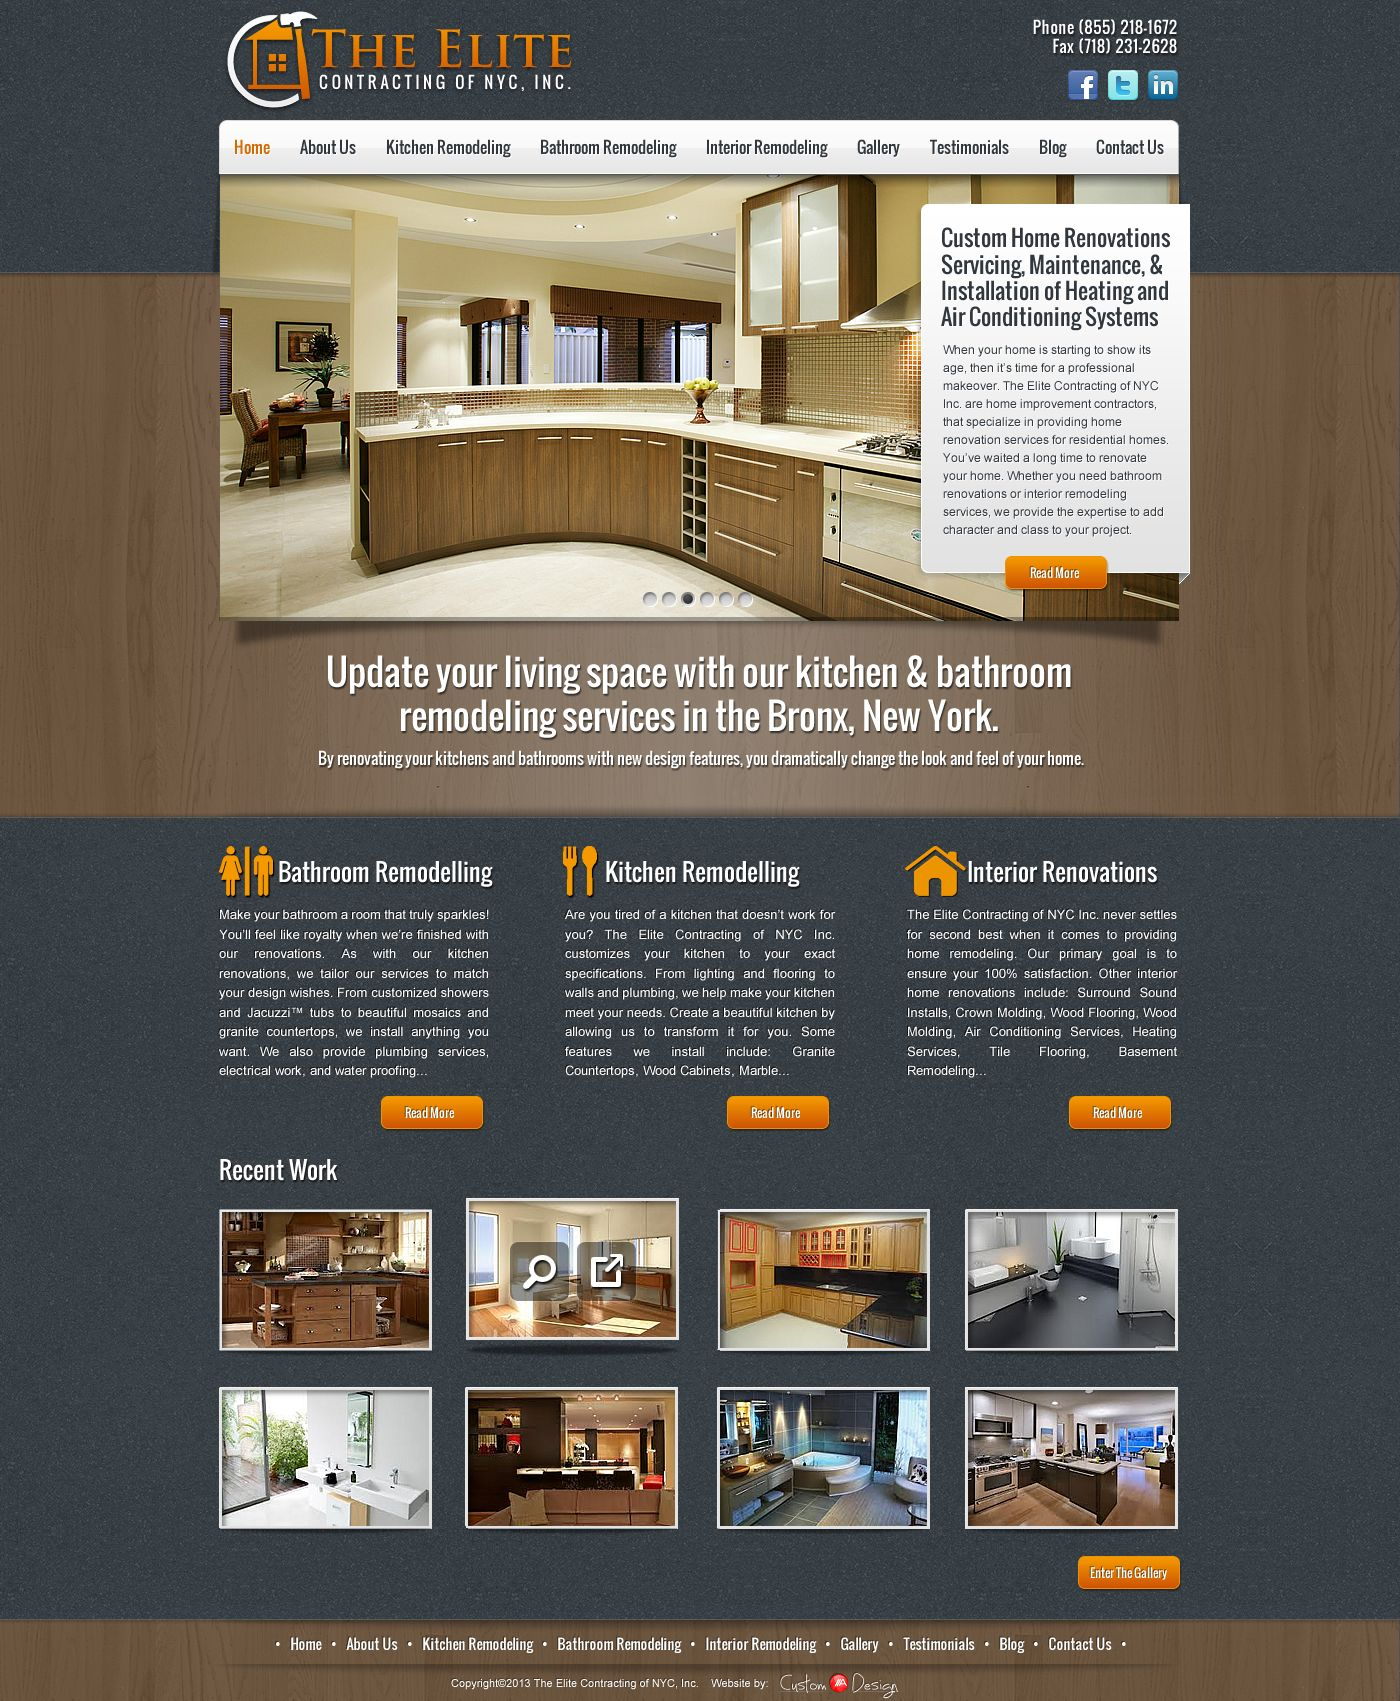 Are you looking for an allinone remodeling company? No